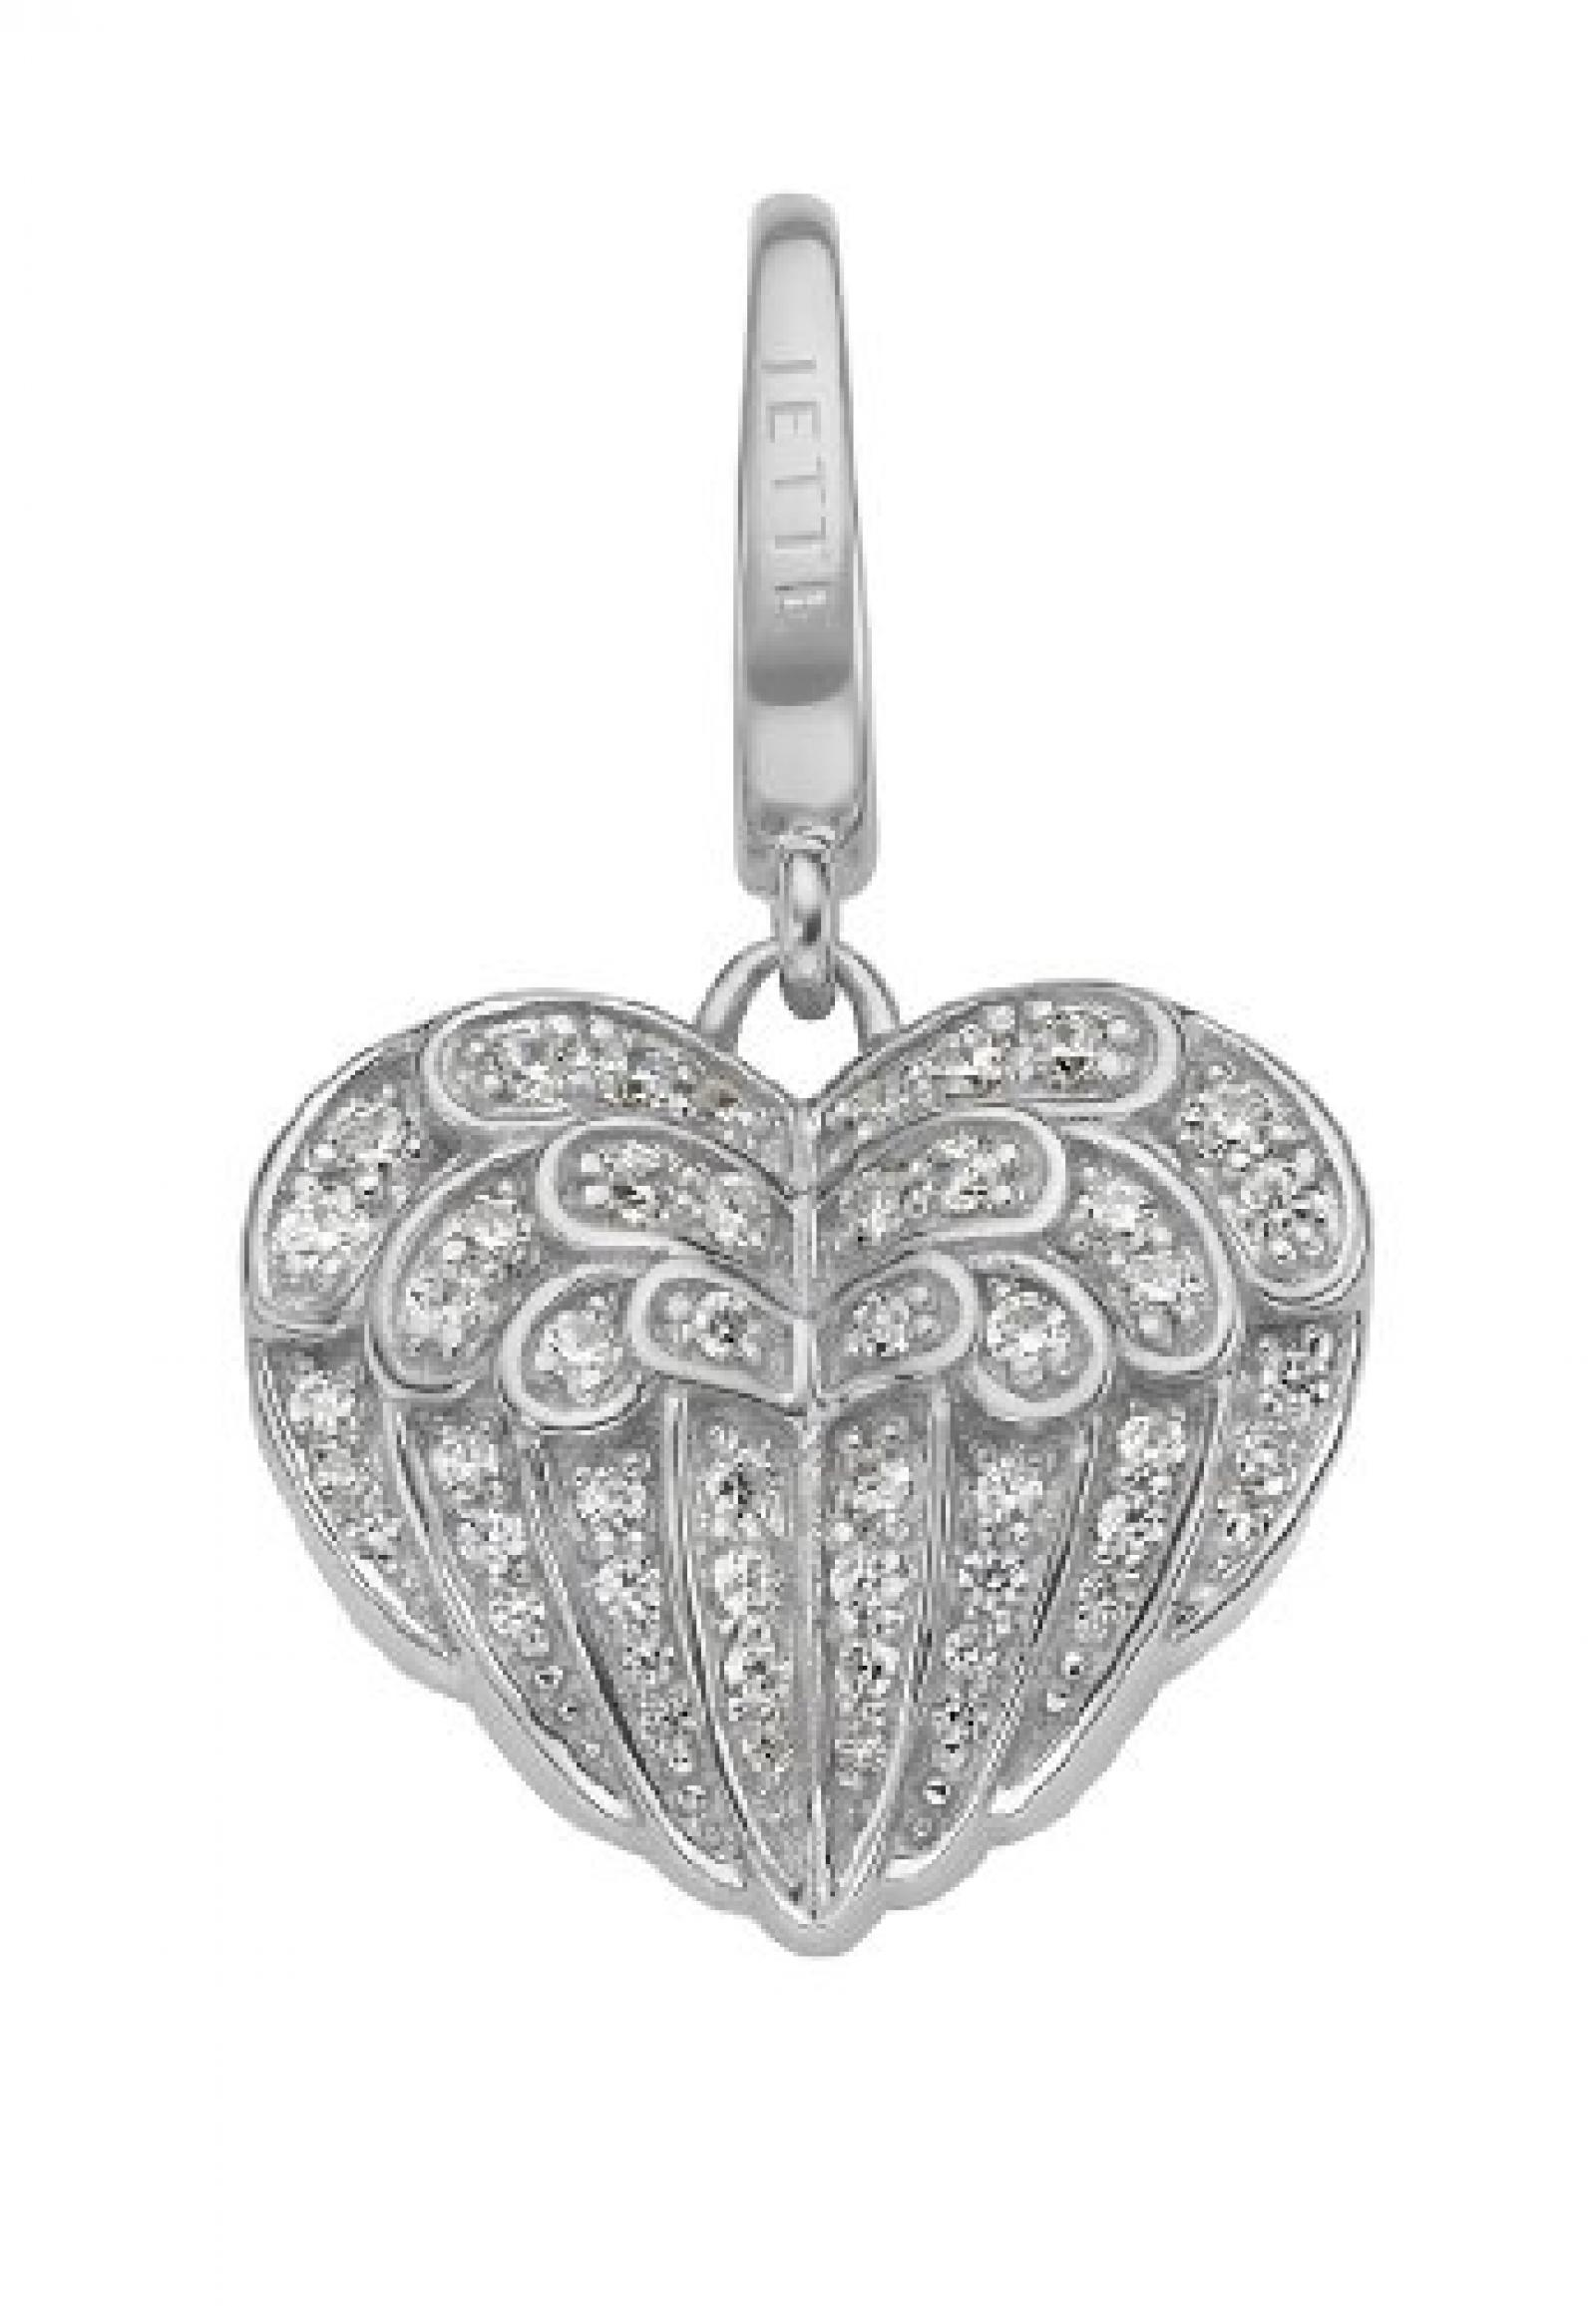 JETTE Charms Damen-Charm CHARM 925er Silber 50 Zirkonia One Size, silber